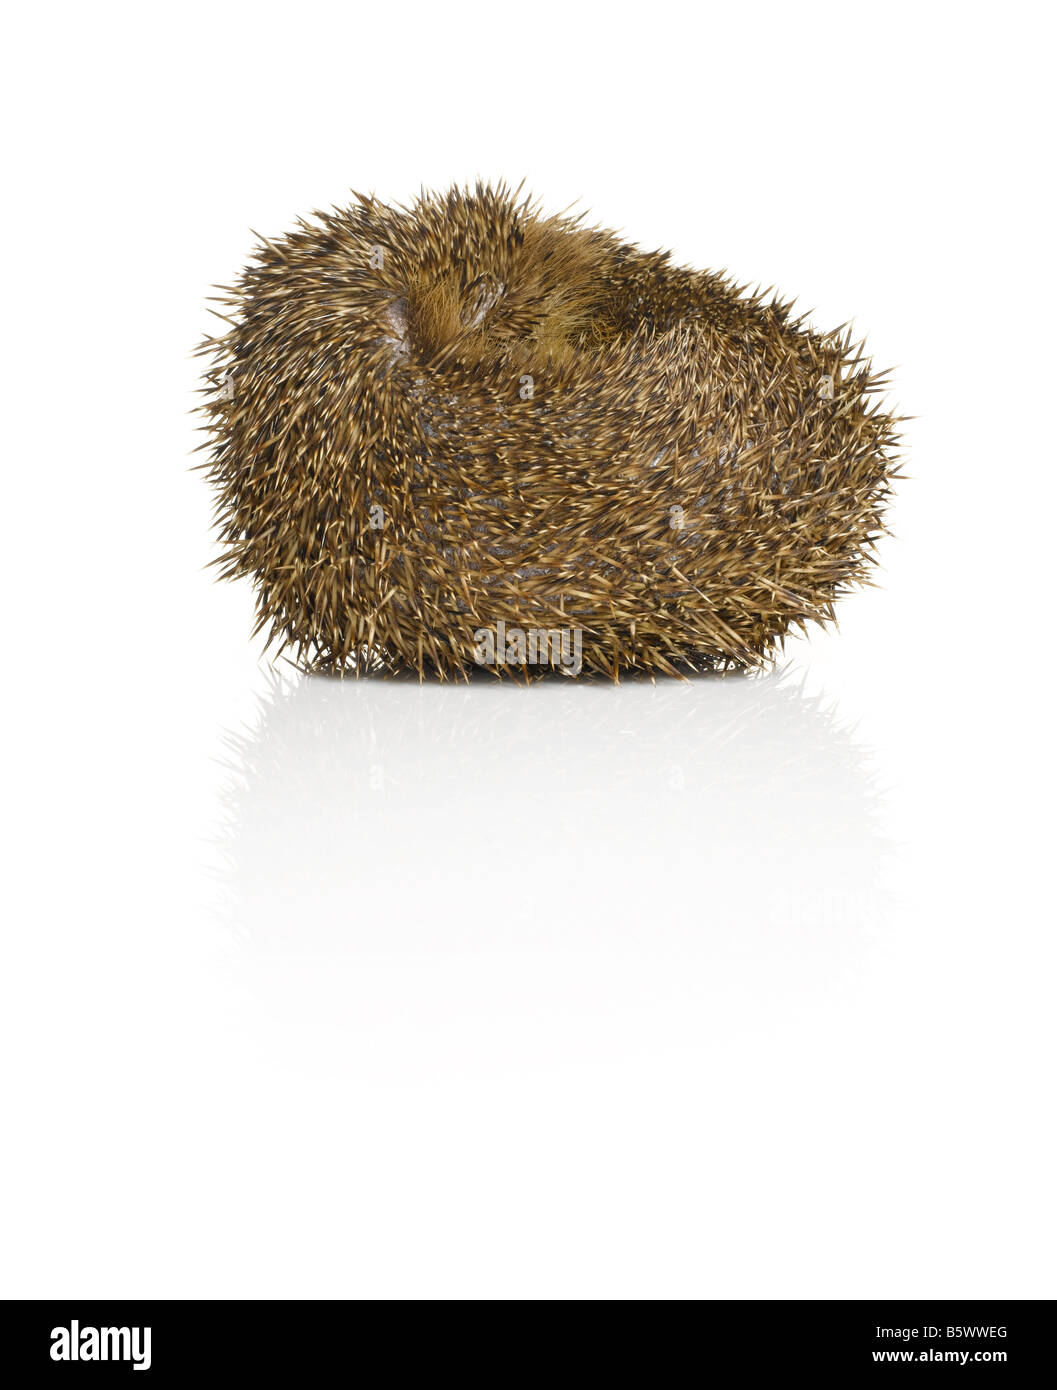 A curled up Hedgehog - Stock Image